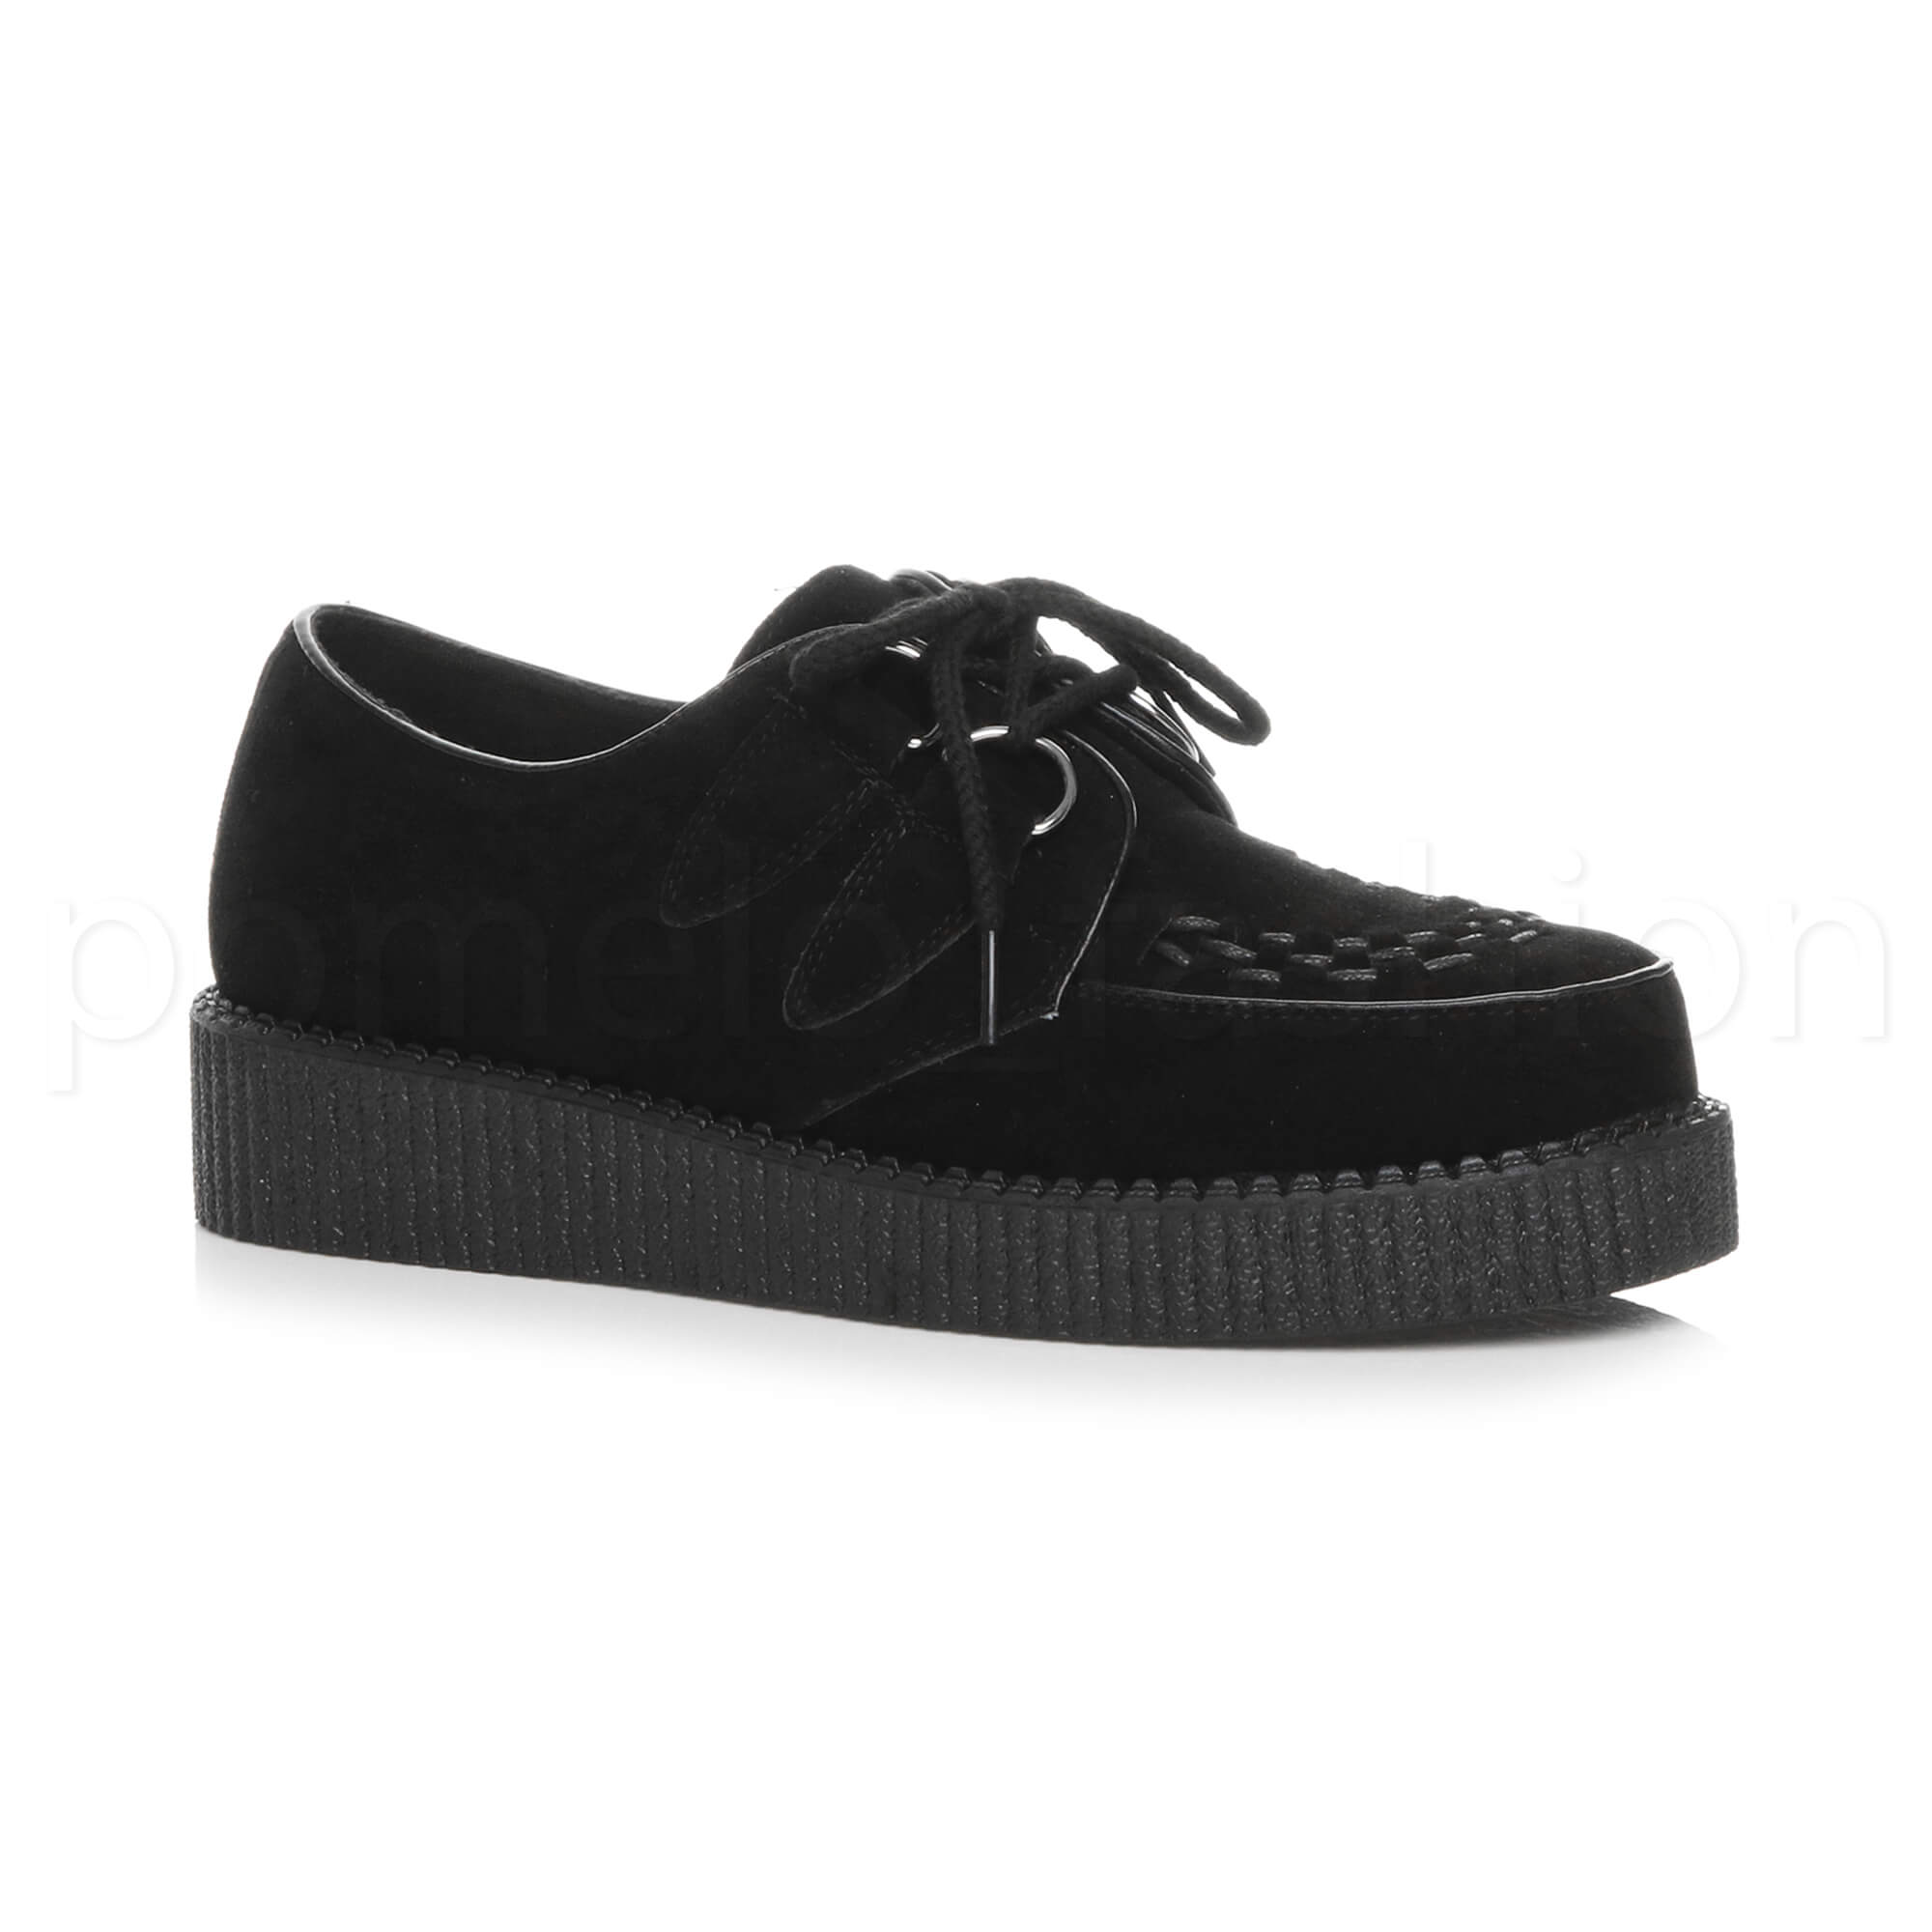 Creepers Shoes Size